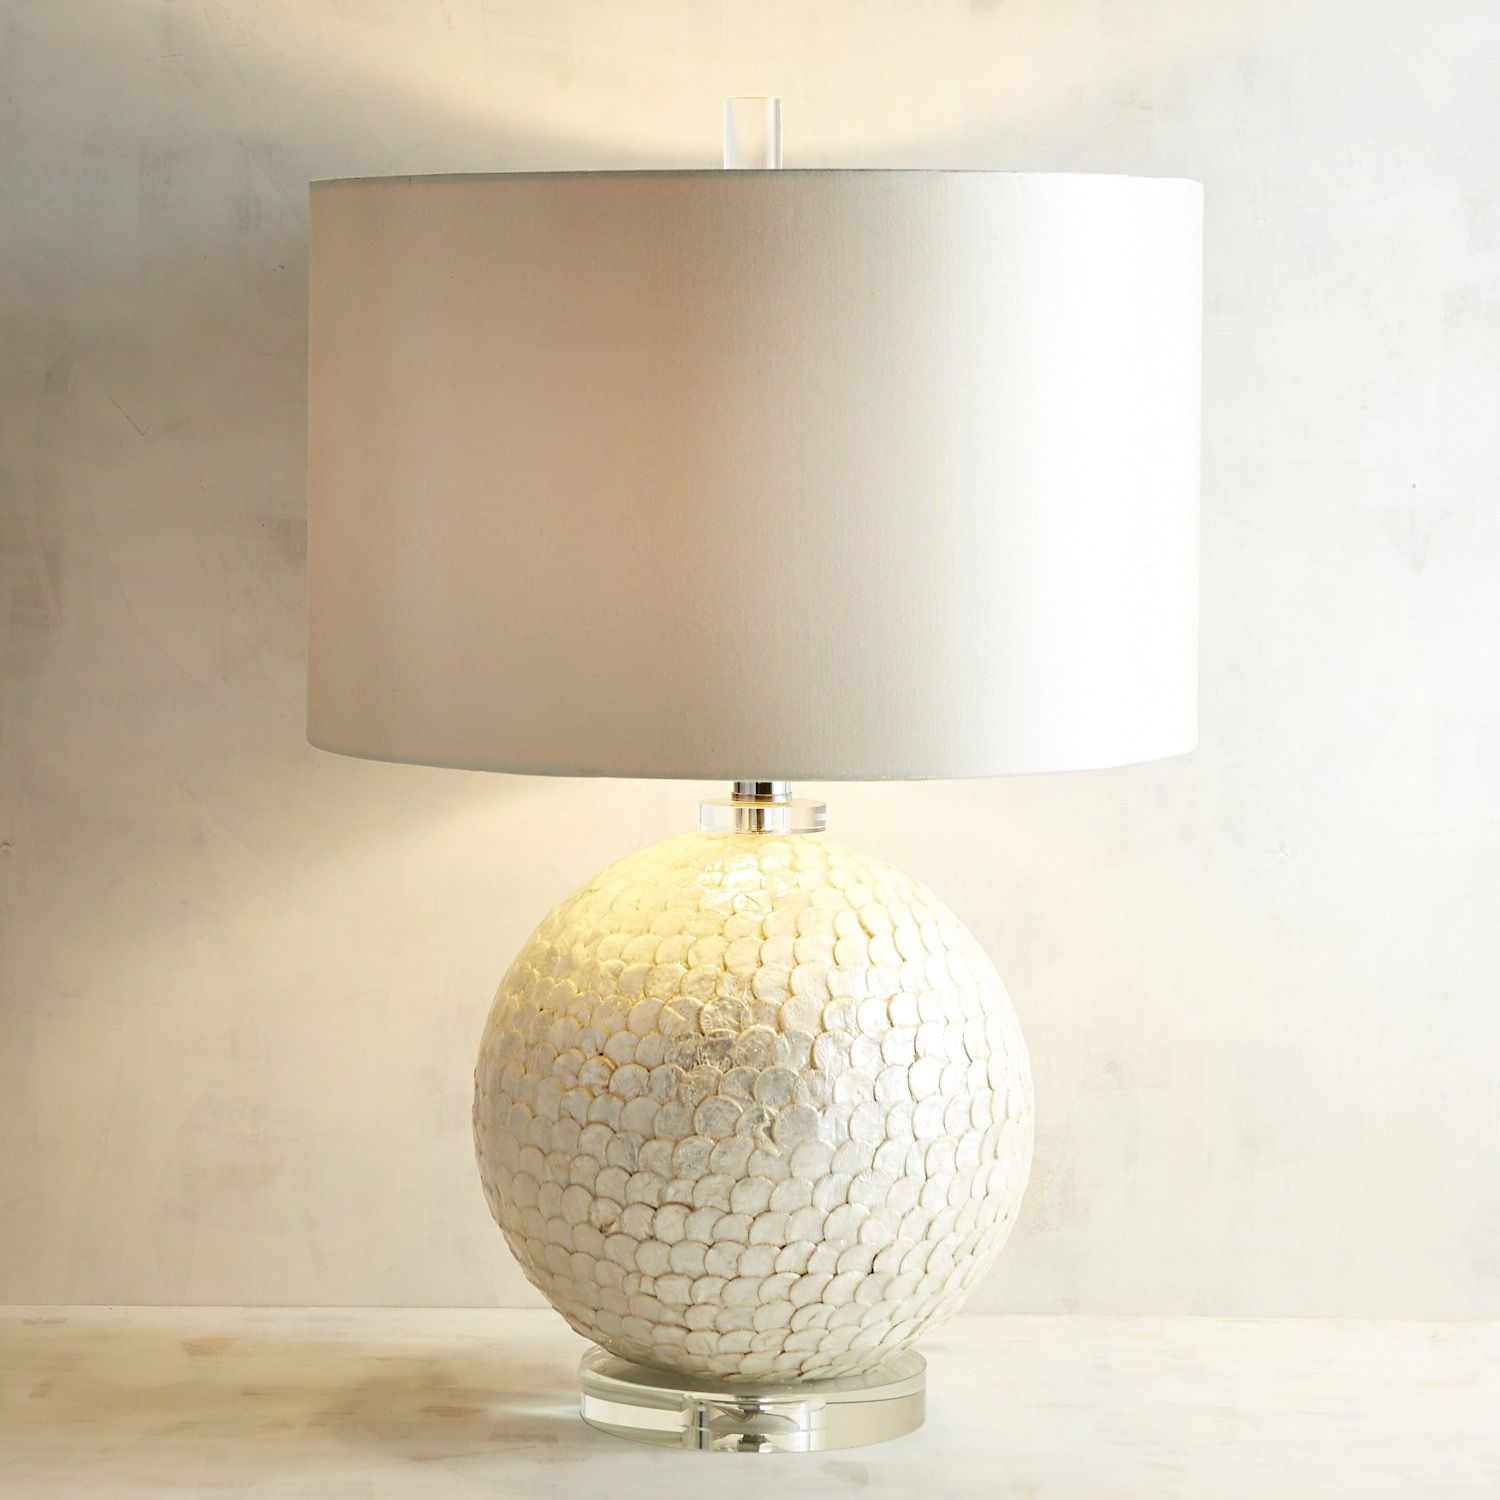 Scalloped mother of pearl table lamp products scalloped mother of pearl table lamp aloadofball Choice Image